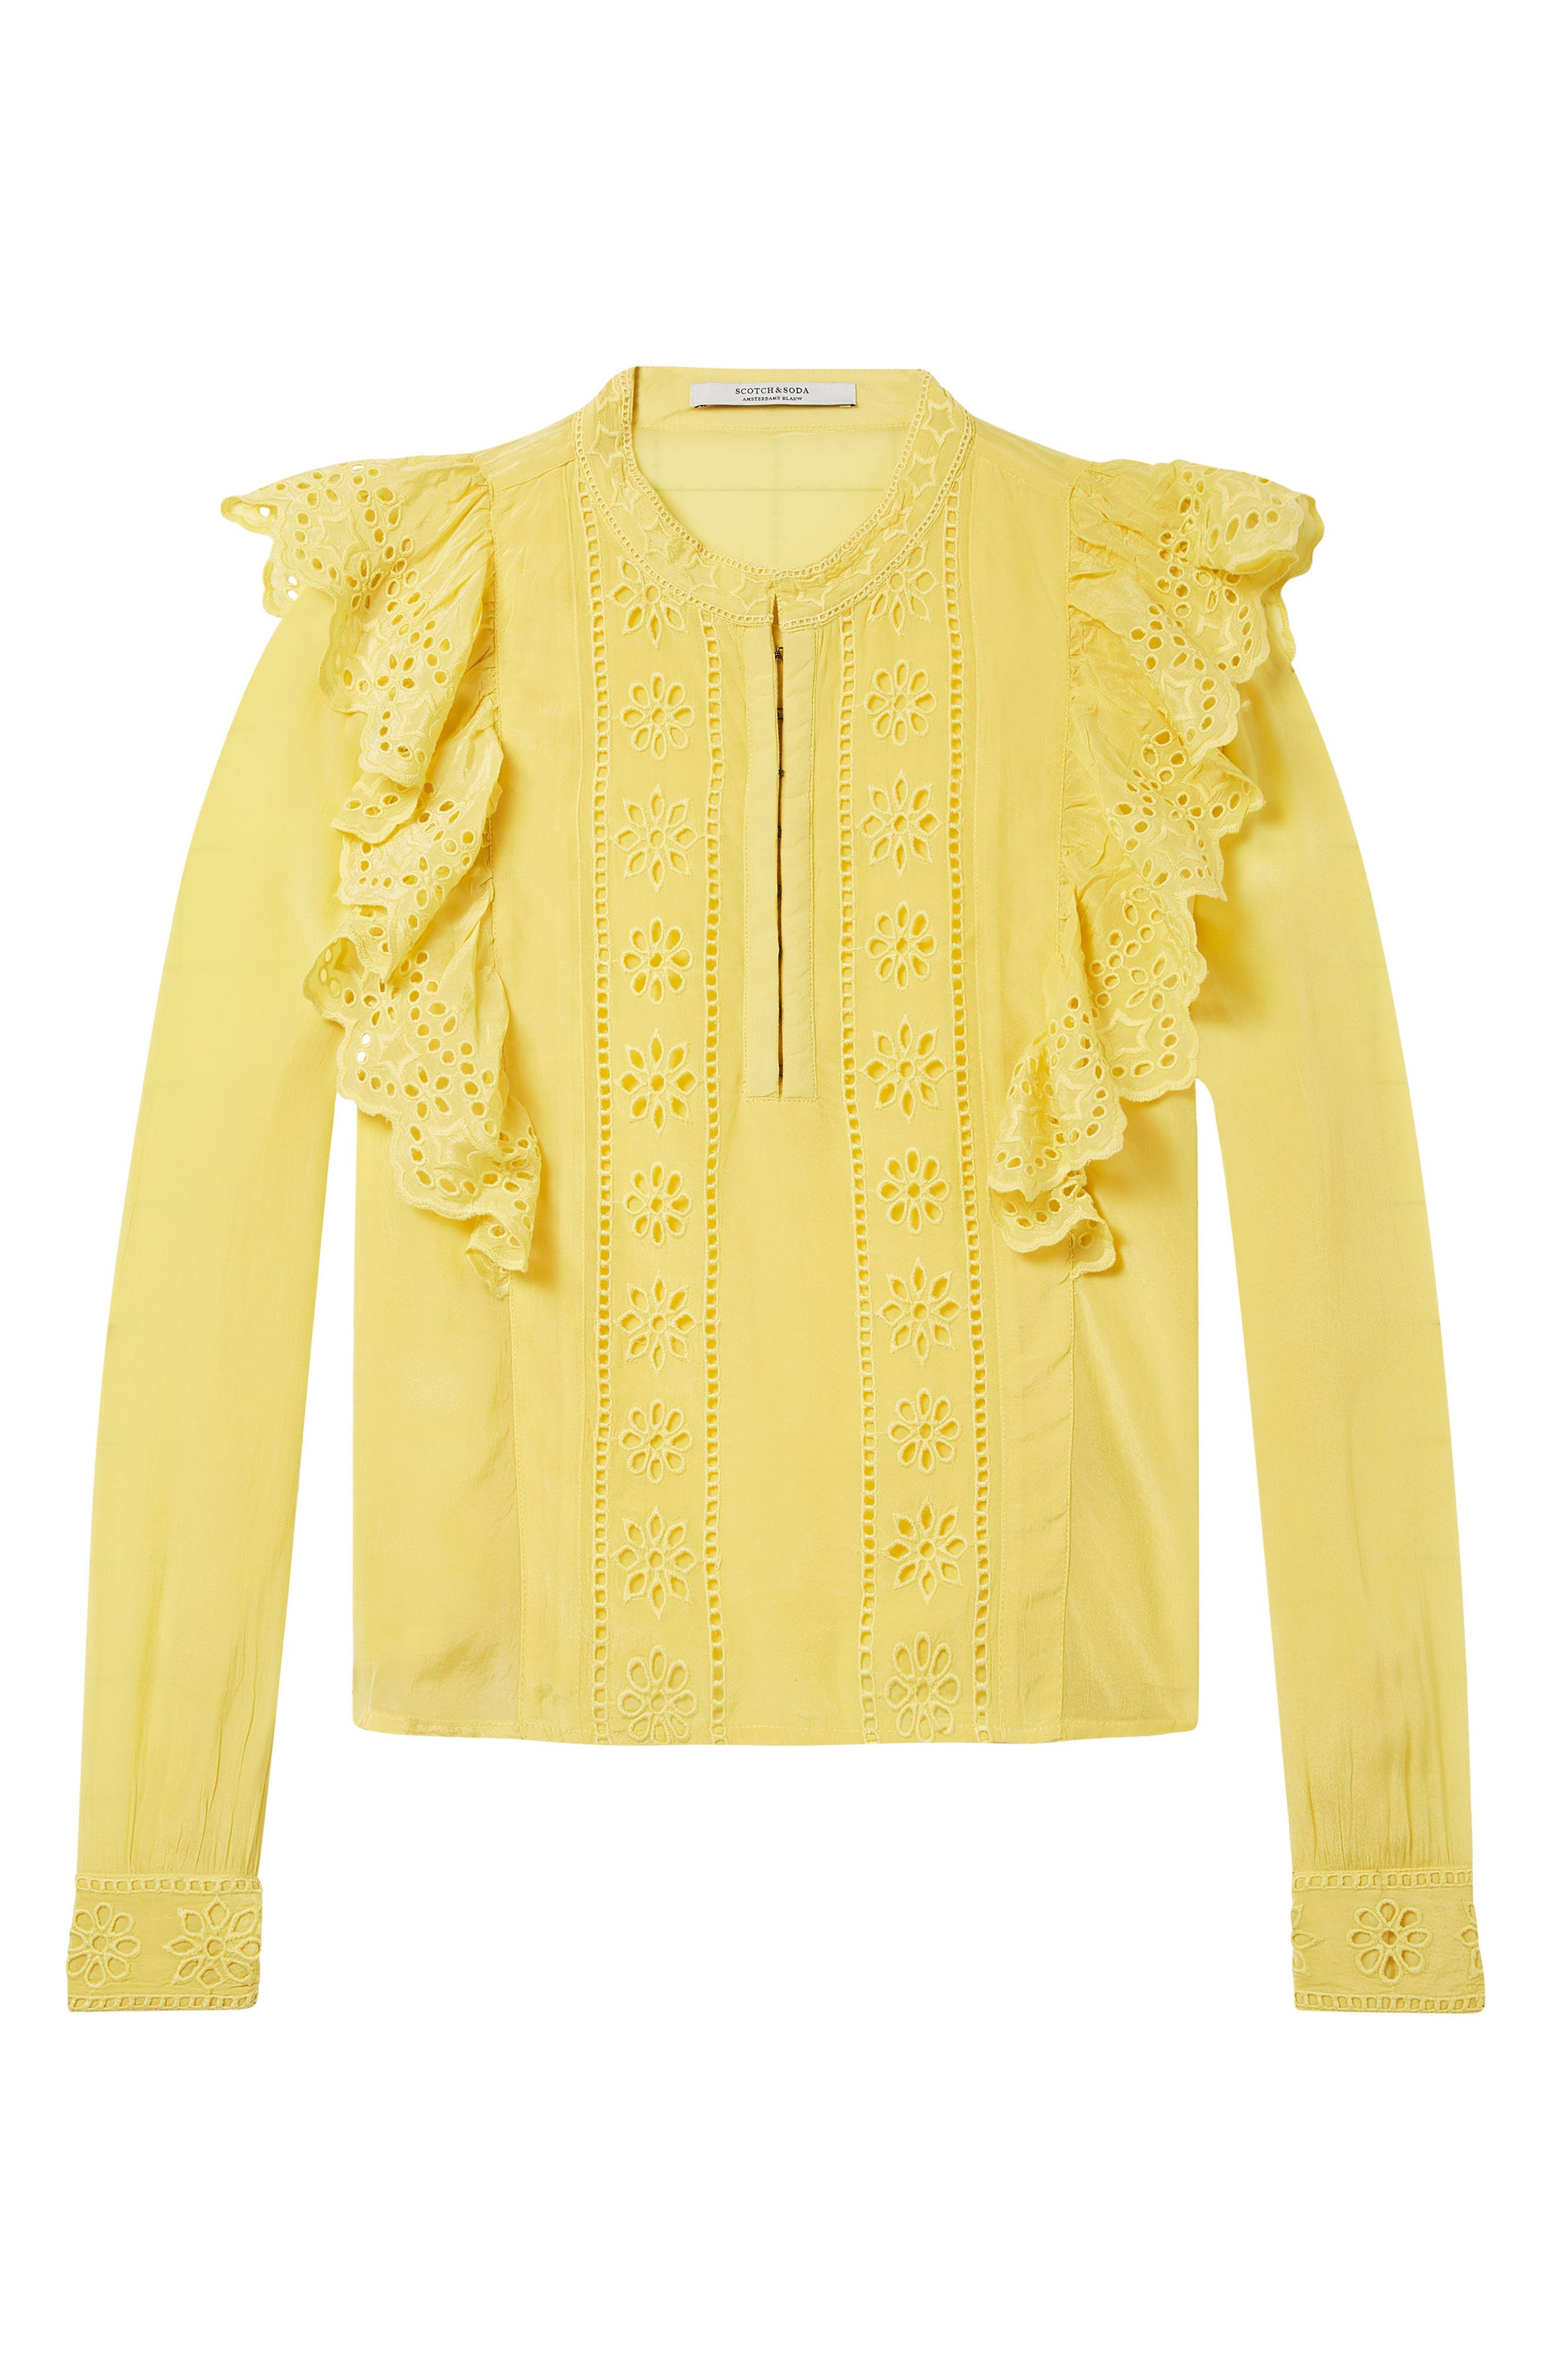 Ruffle Embroidered Eyelet Top,                             Alternate thumbnail 5, color,                             2118 Cheddar